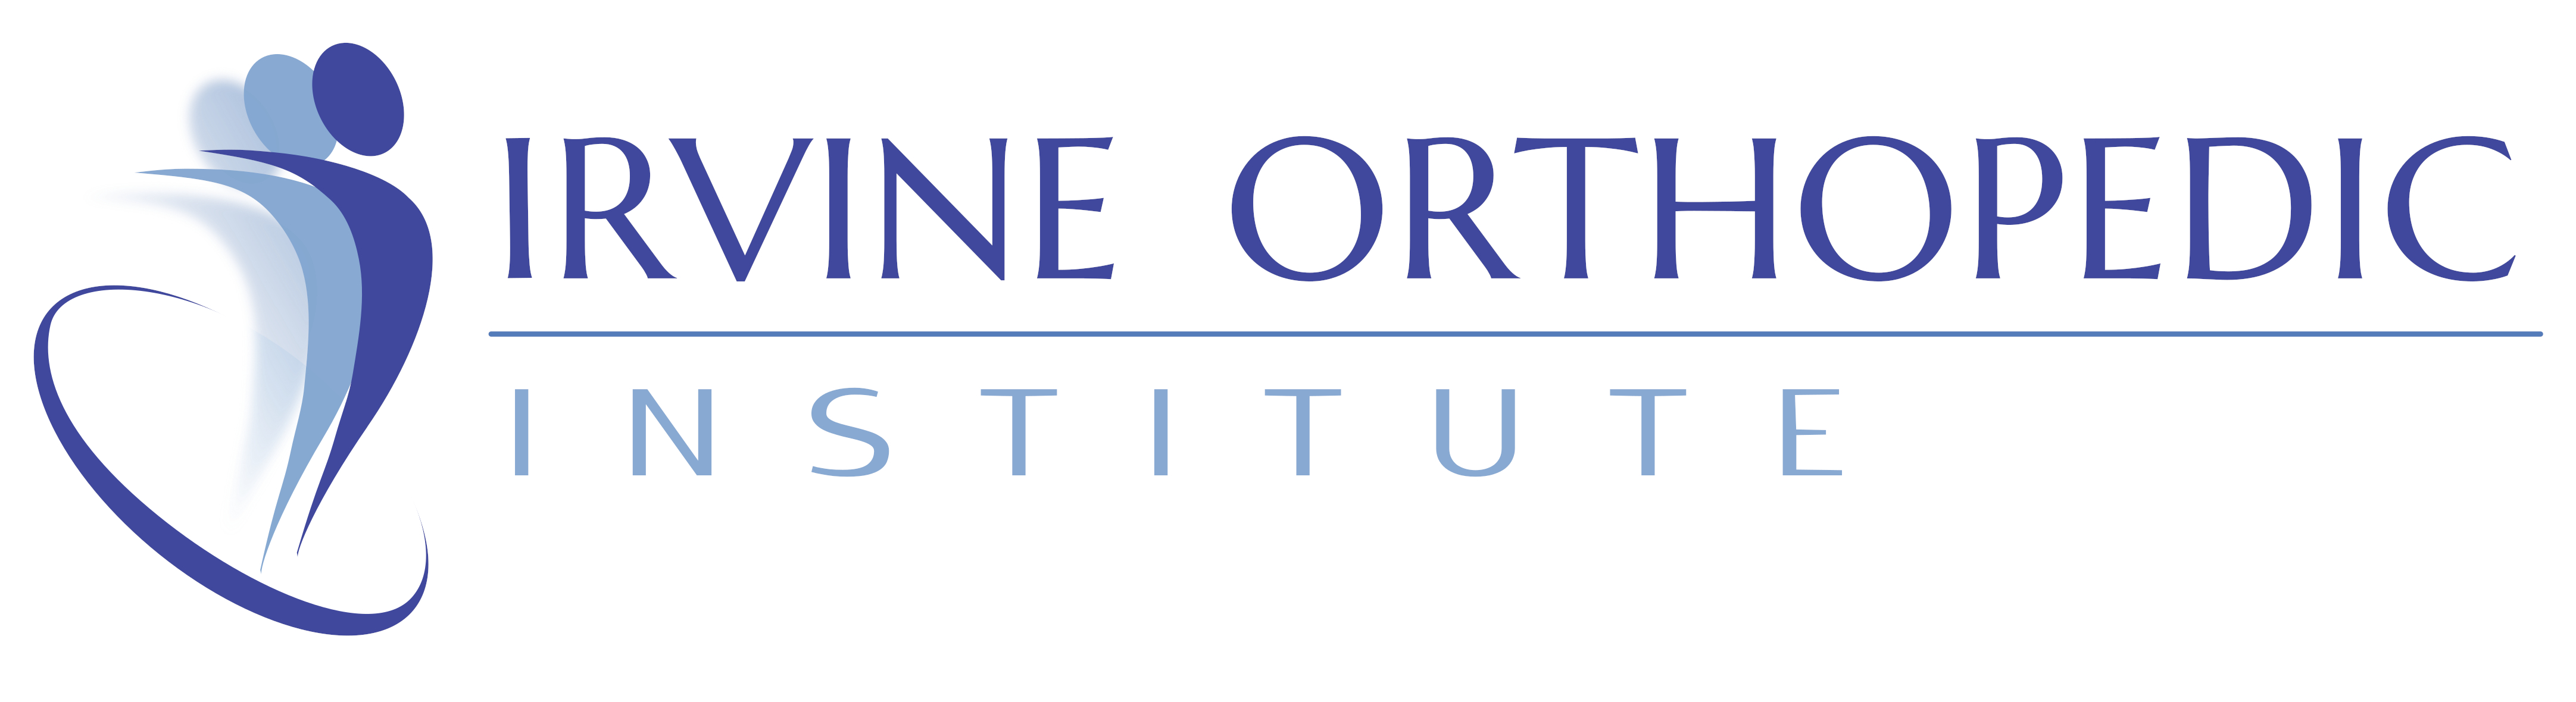 Irvine Orthopedic Institute